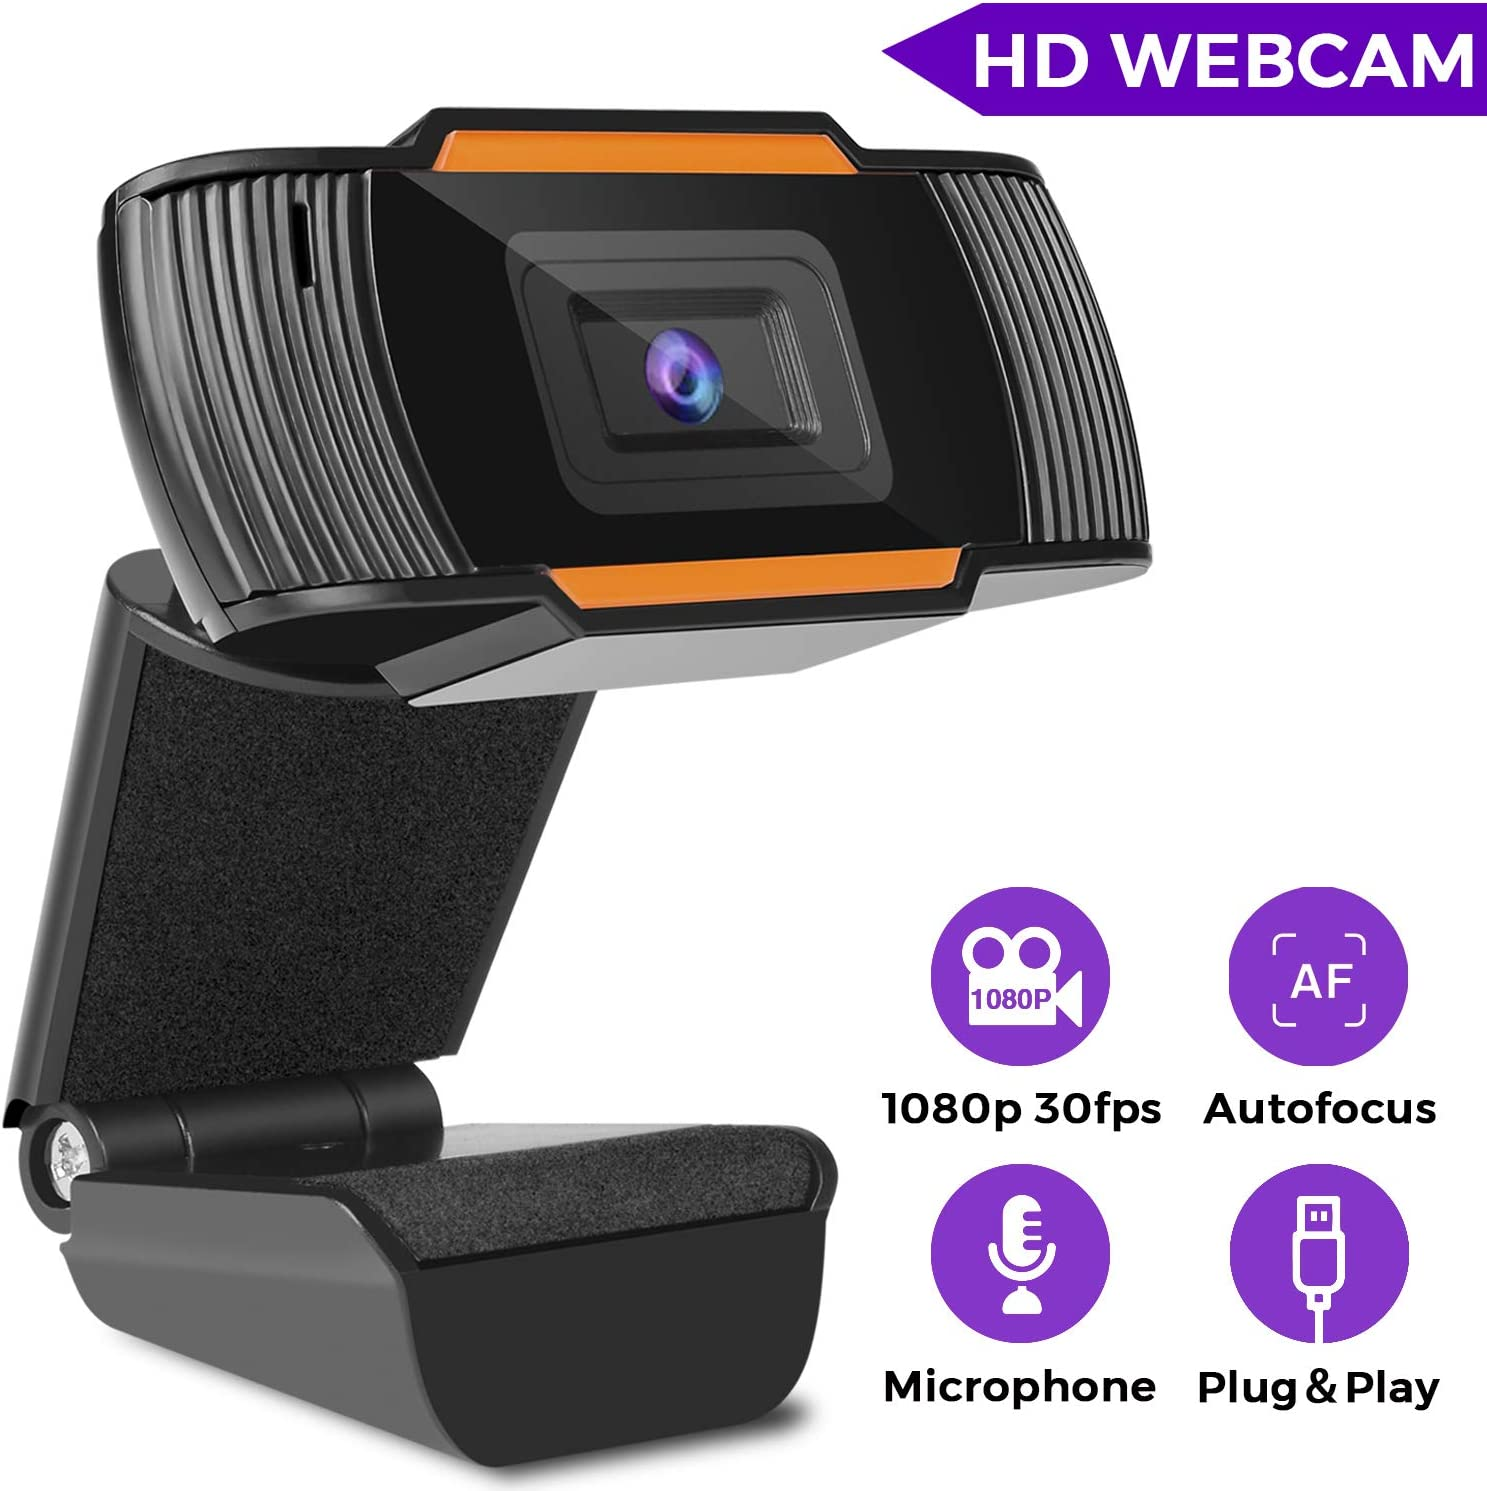 Webcam with Microphone, HD Webcam 1080P, Web Cameras for Computers, PC Camera USB Webcam for Laptop Streaming, Video Chatting